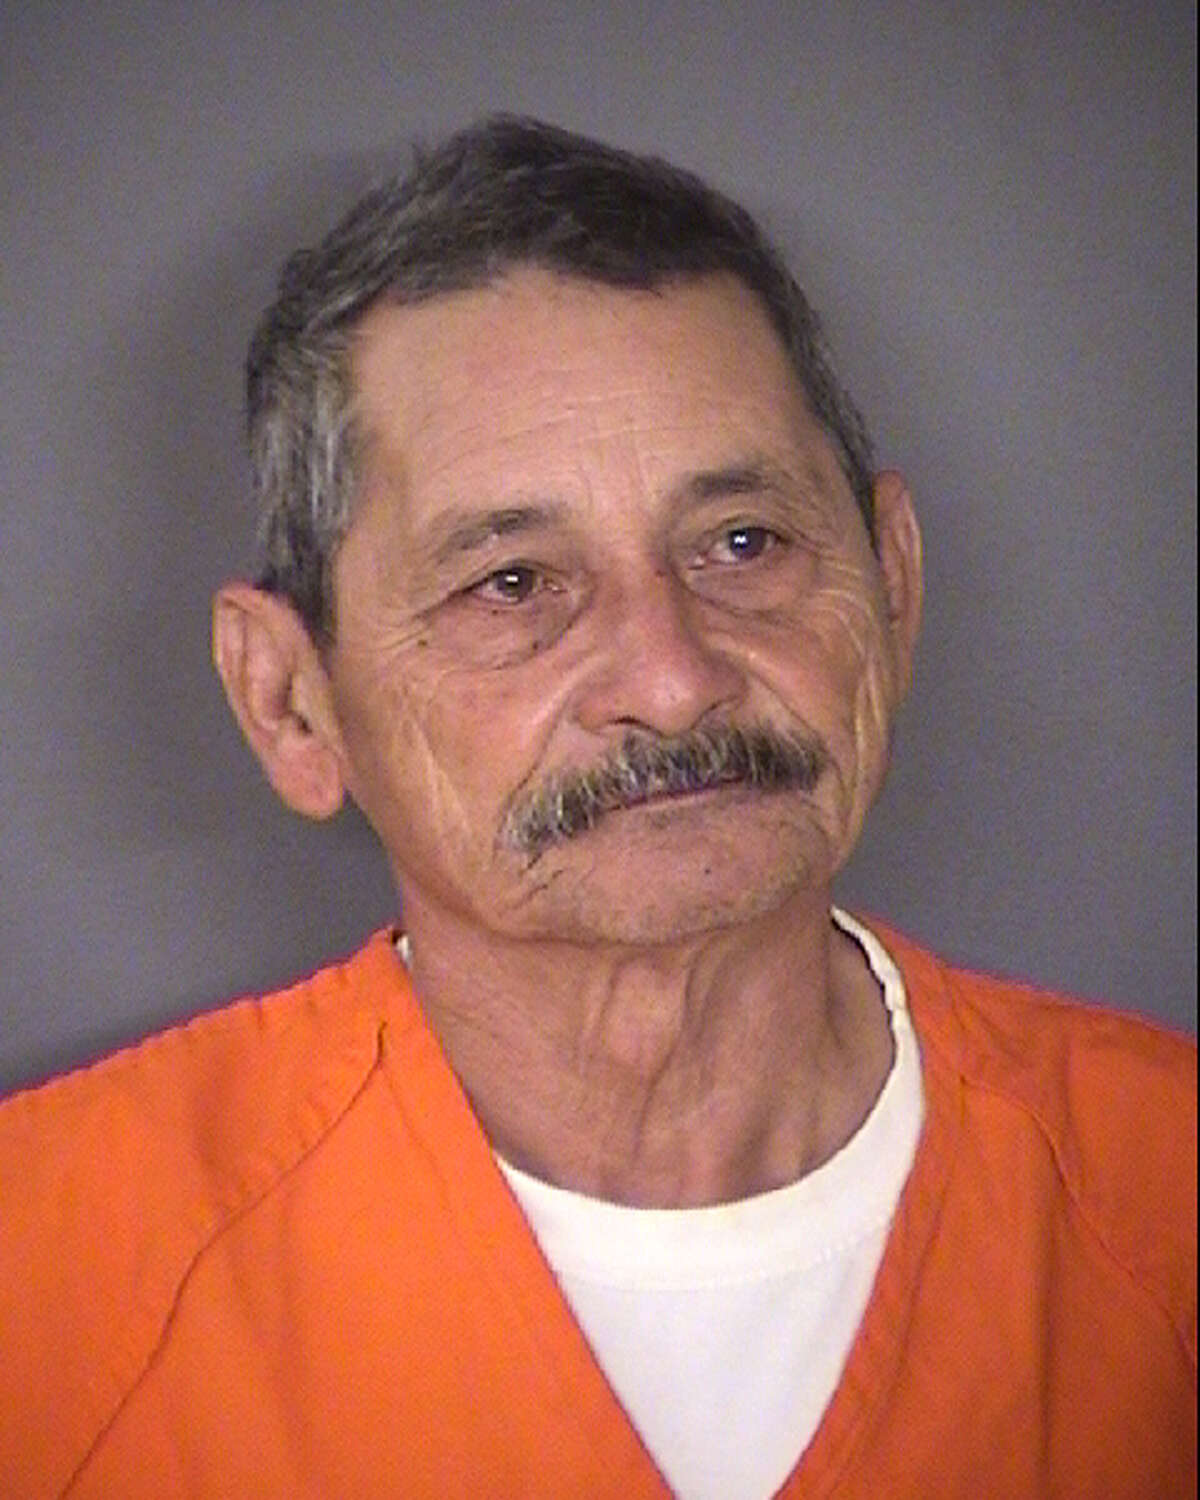 Jose Reyes, 74, was charged with murder in connection with the death of 65-year-old Juan Apolinar Jr.